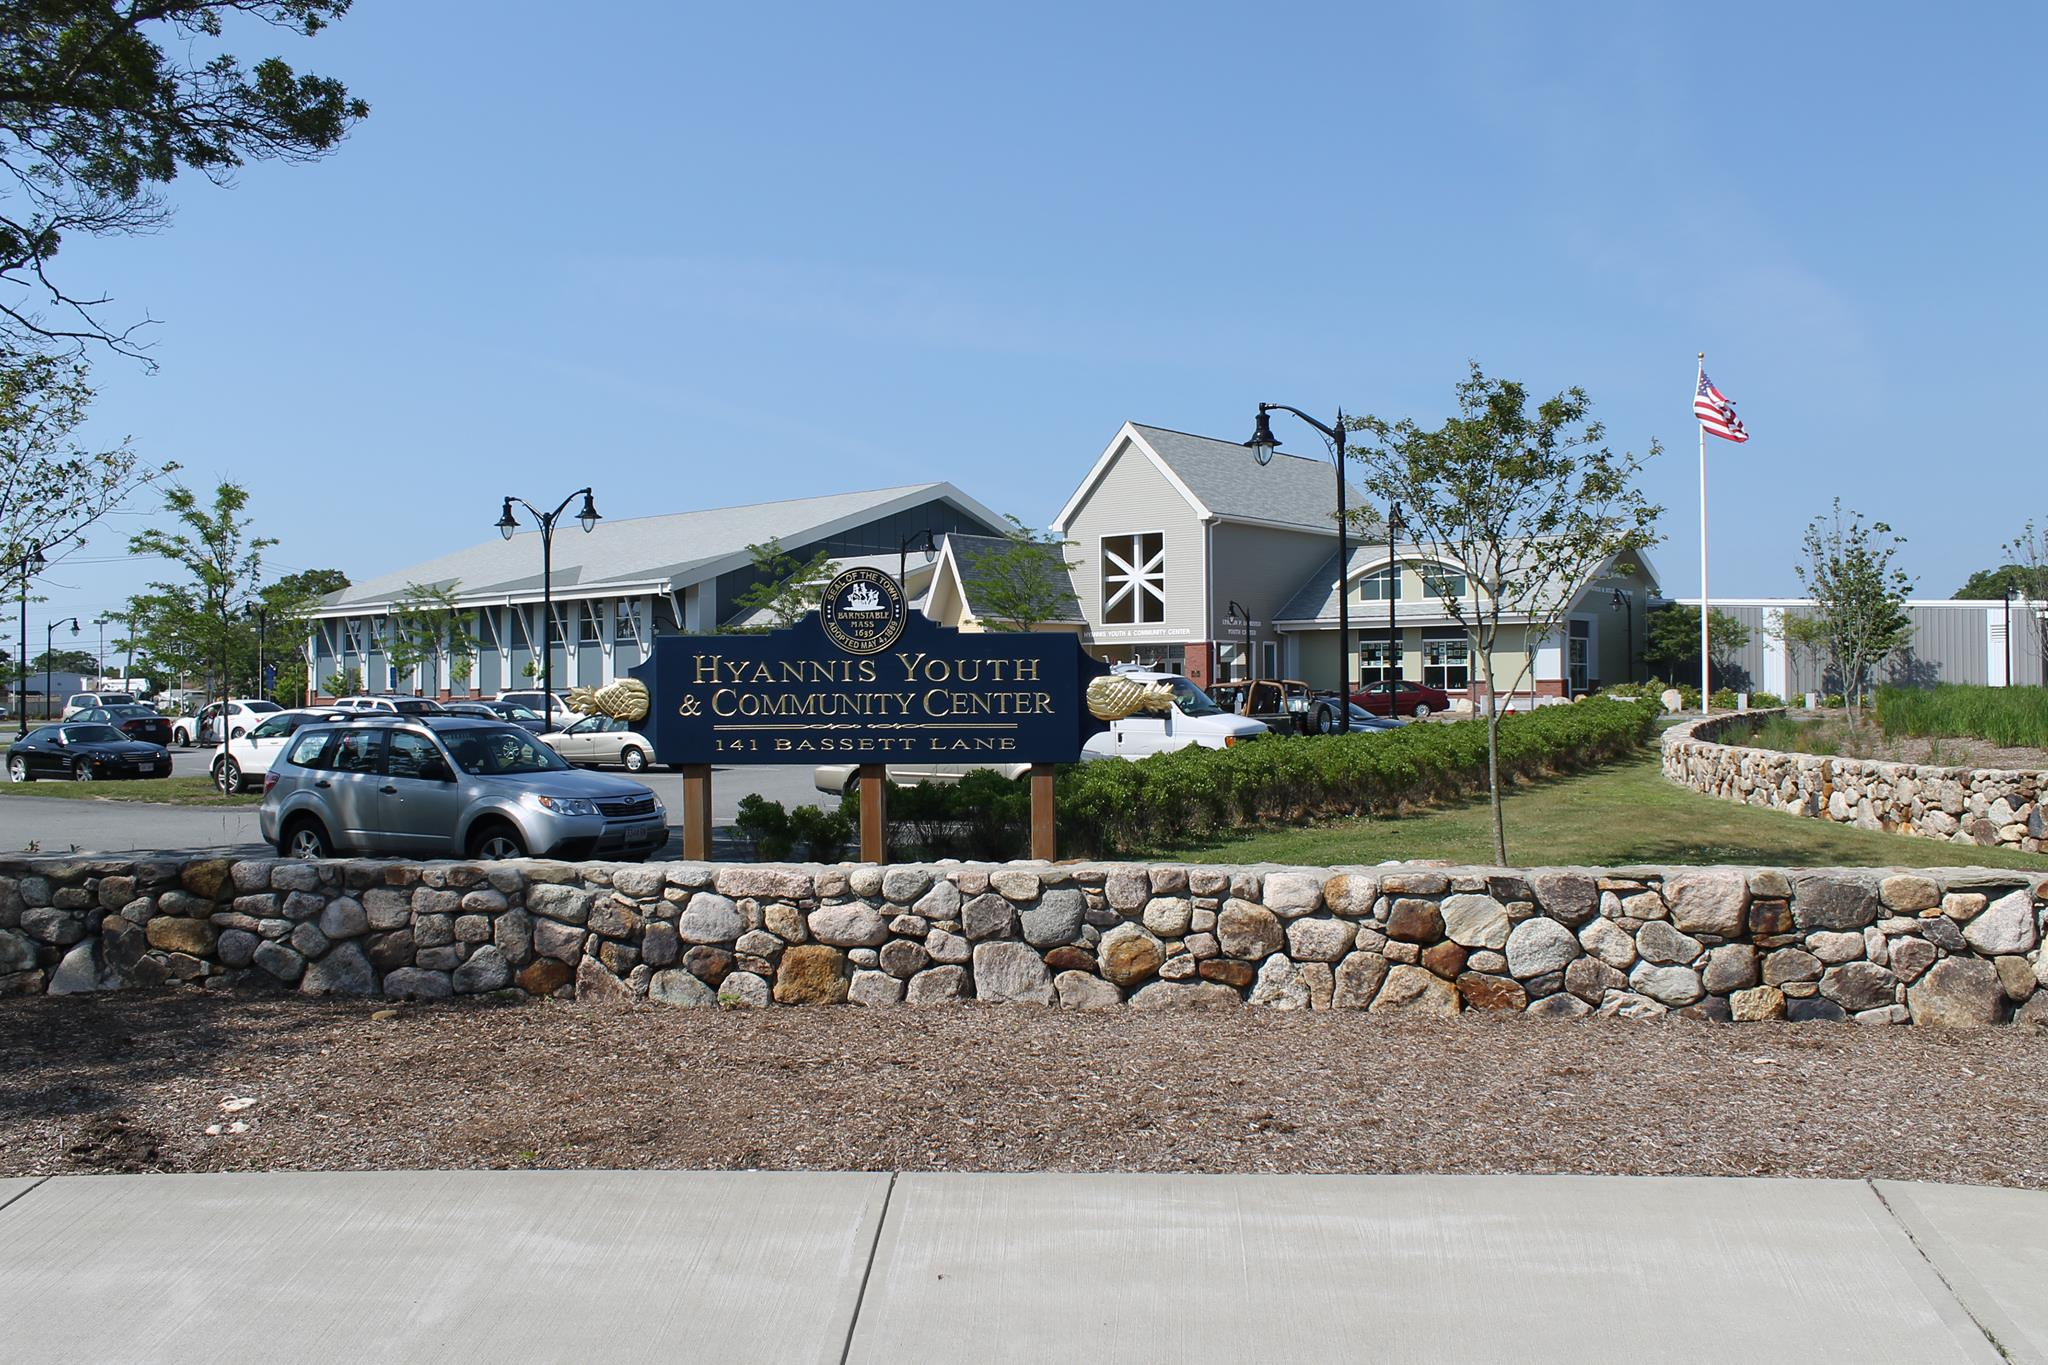 Hyannis Youth and Community Center